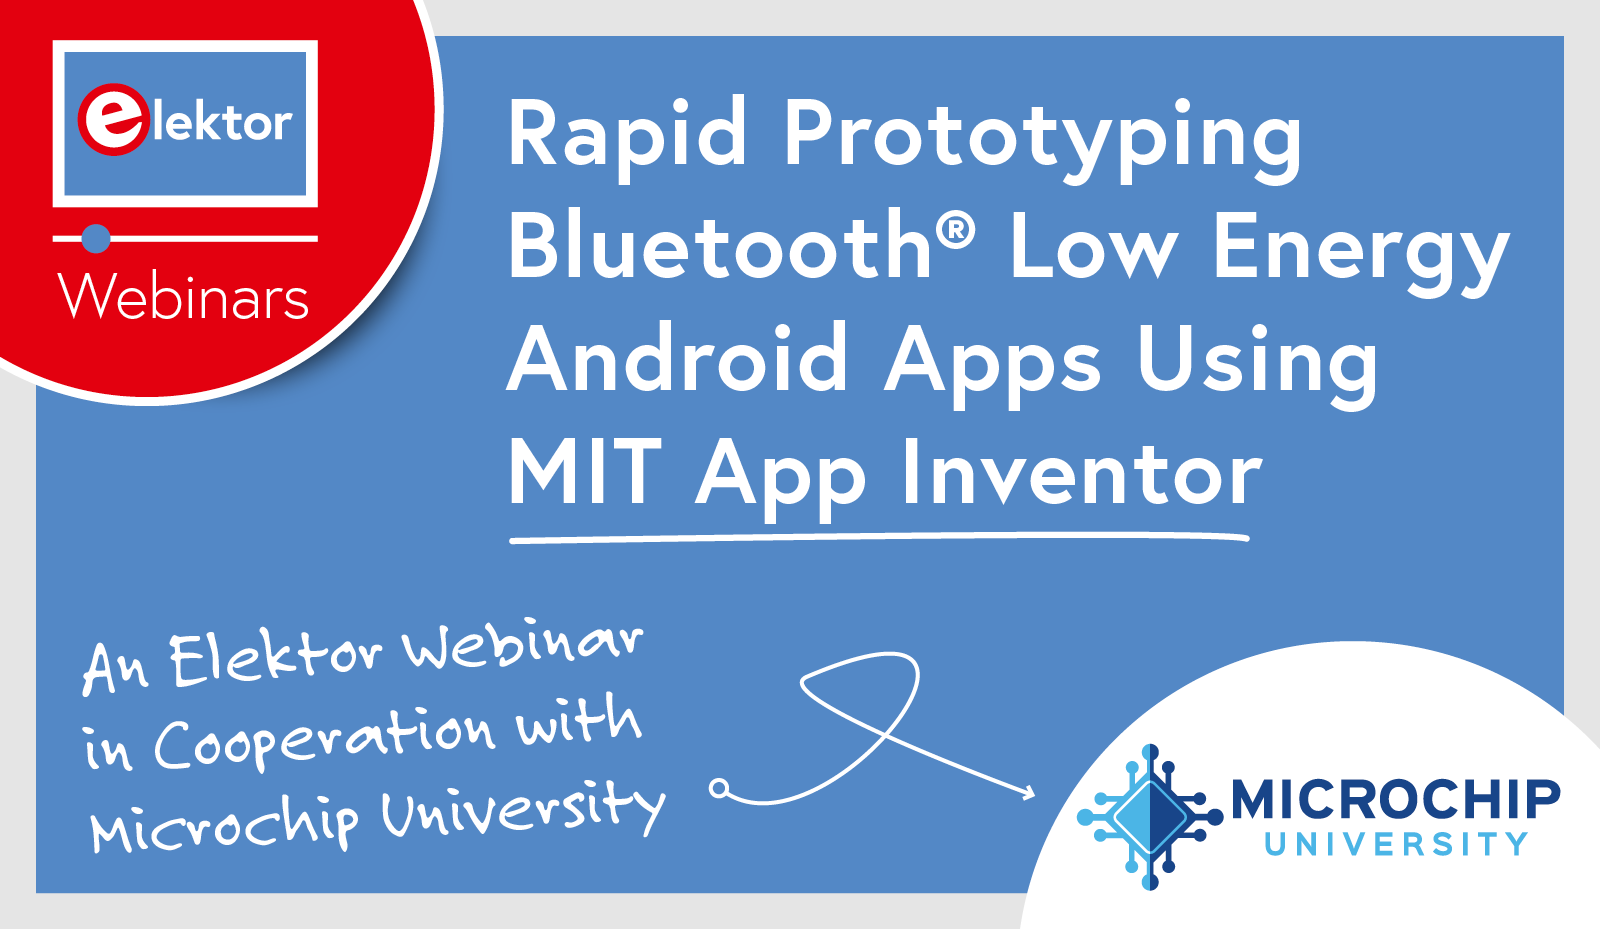 Rapid Prototyping BLE Android Apps Using MIT App Inventor